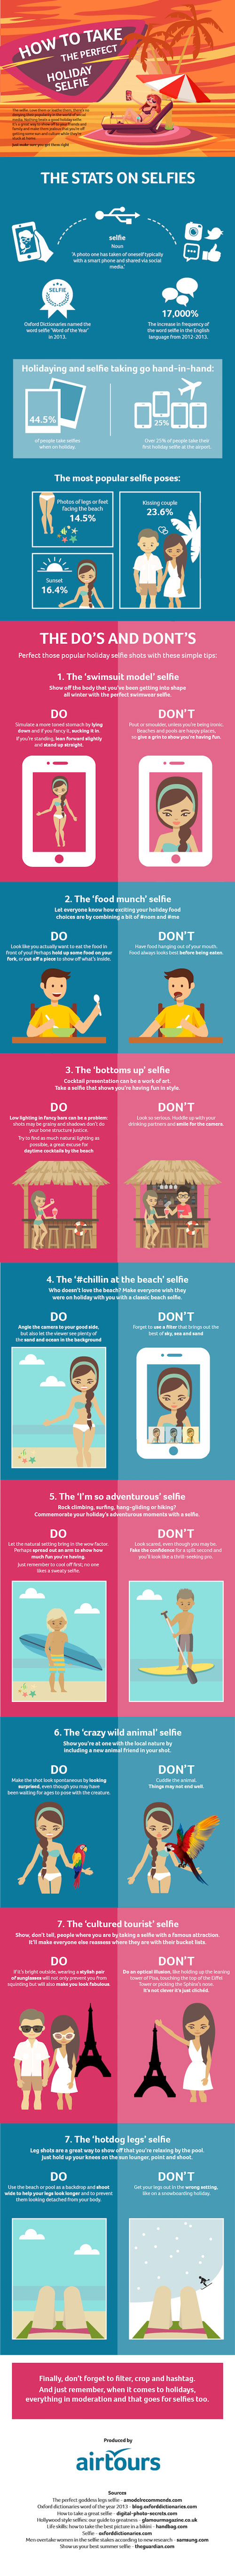 How-to-Take-the-Perfect-Holiday-Selfie